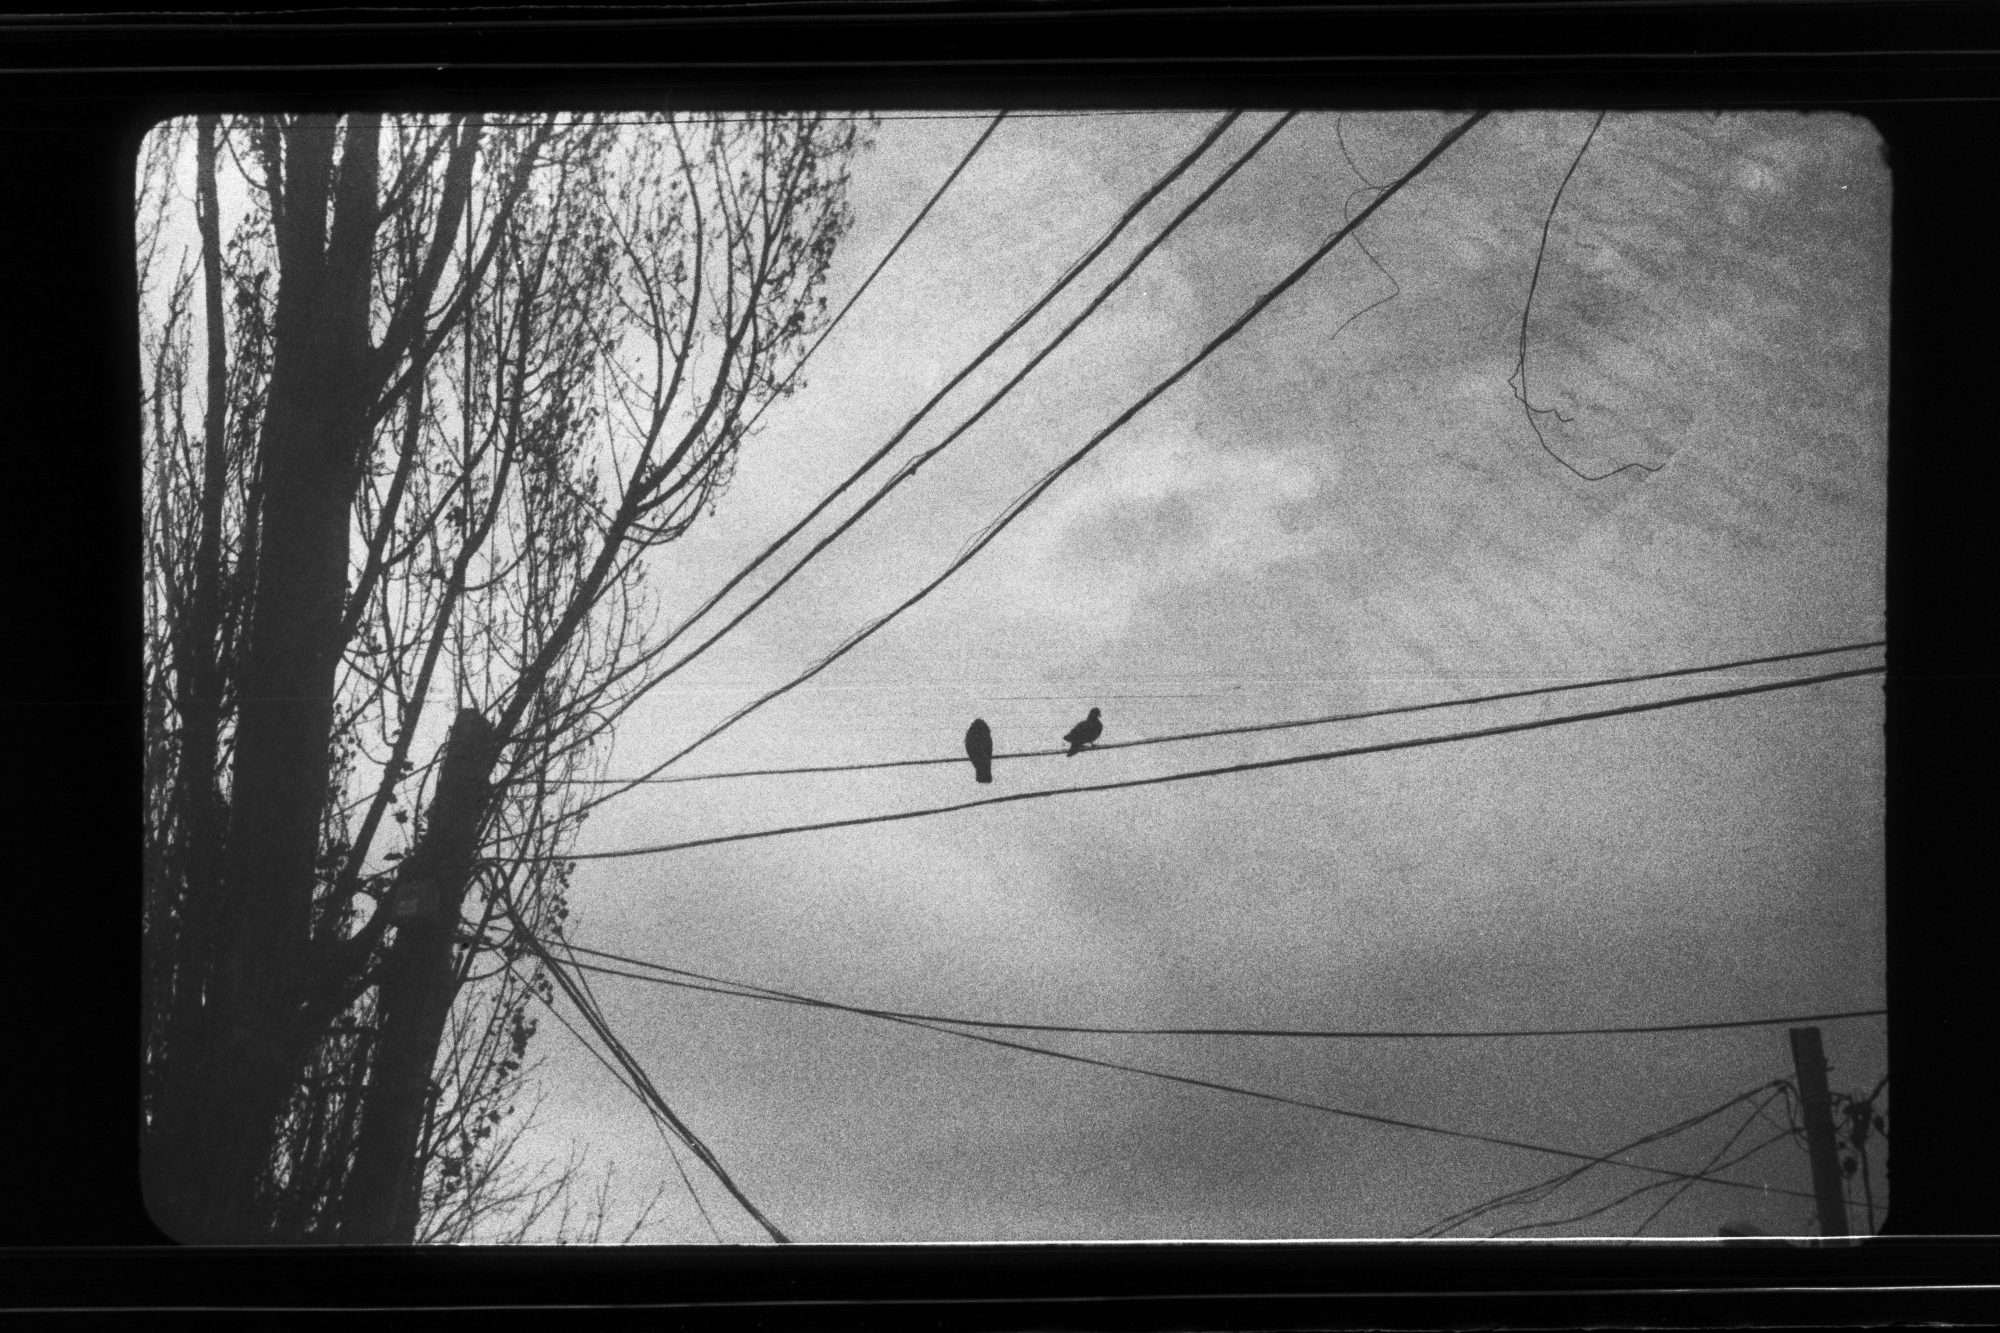 Birds on wire (Pic: Andrew Khludeyev)